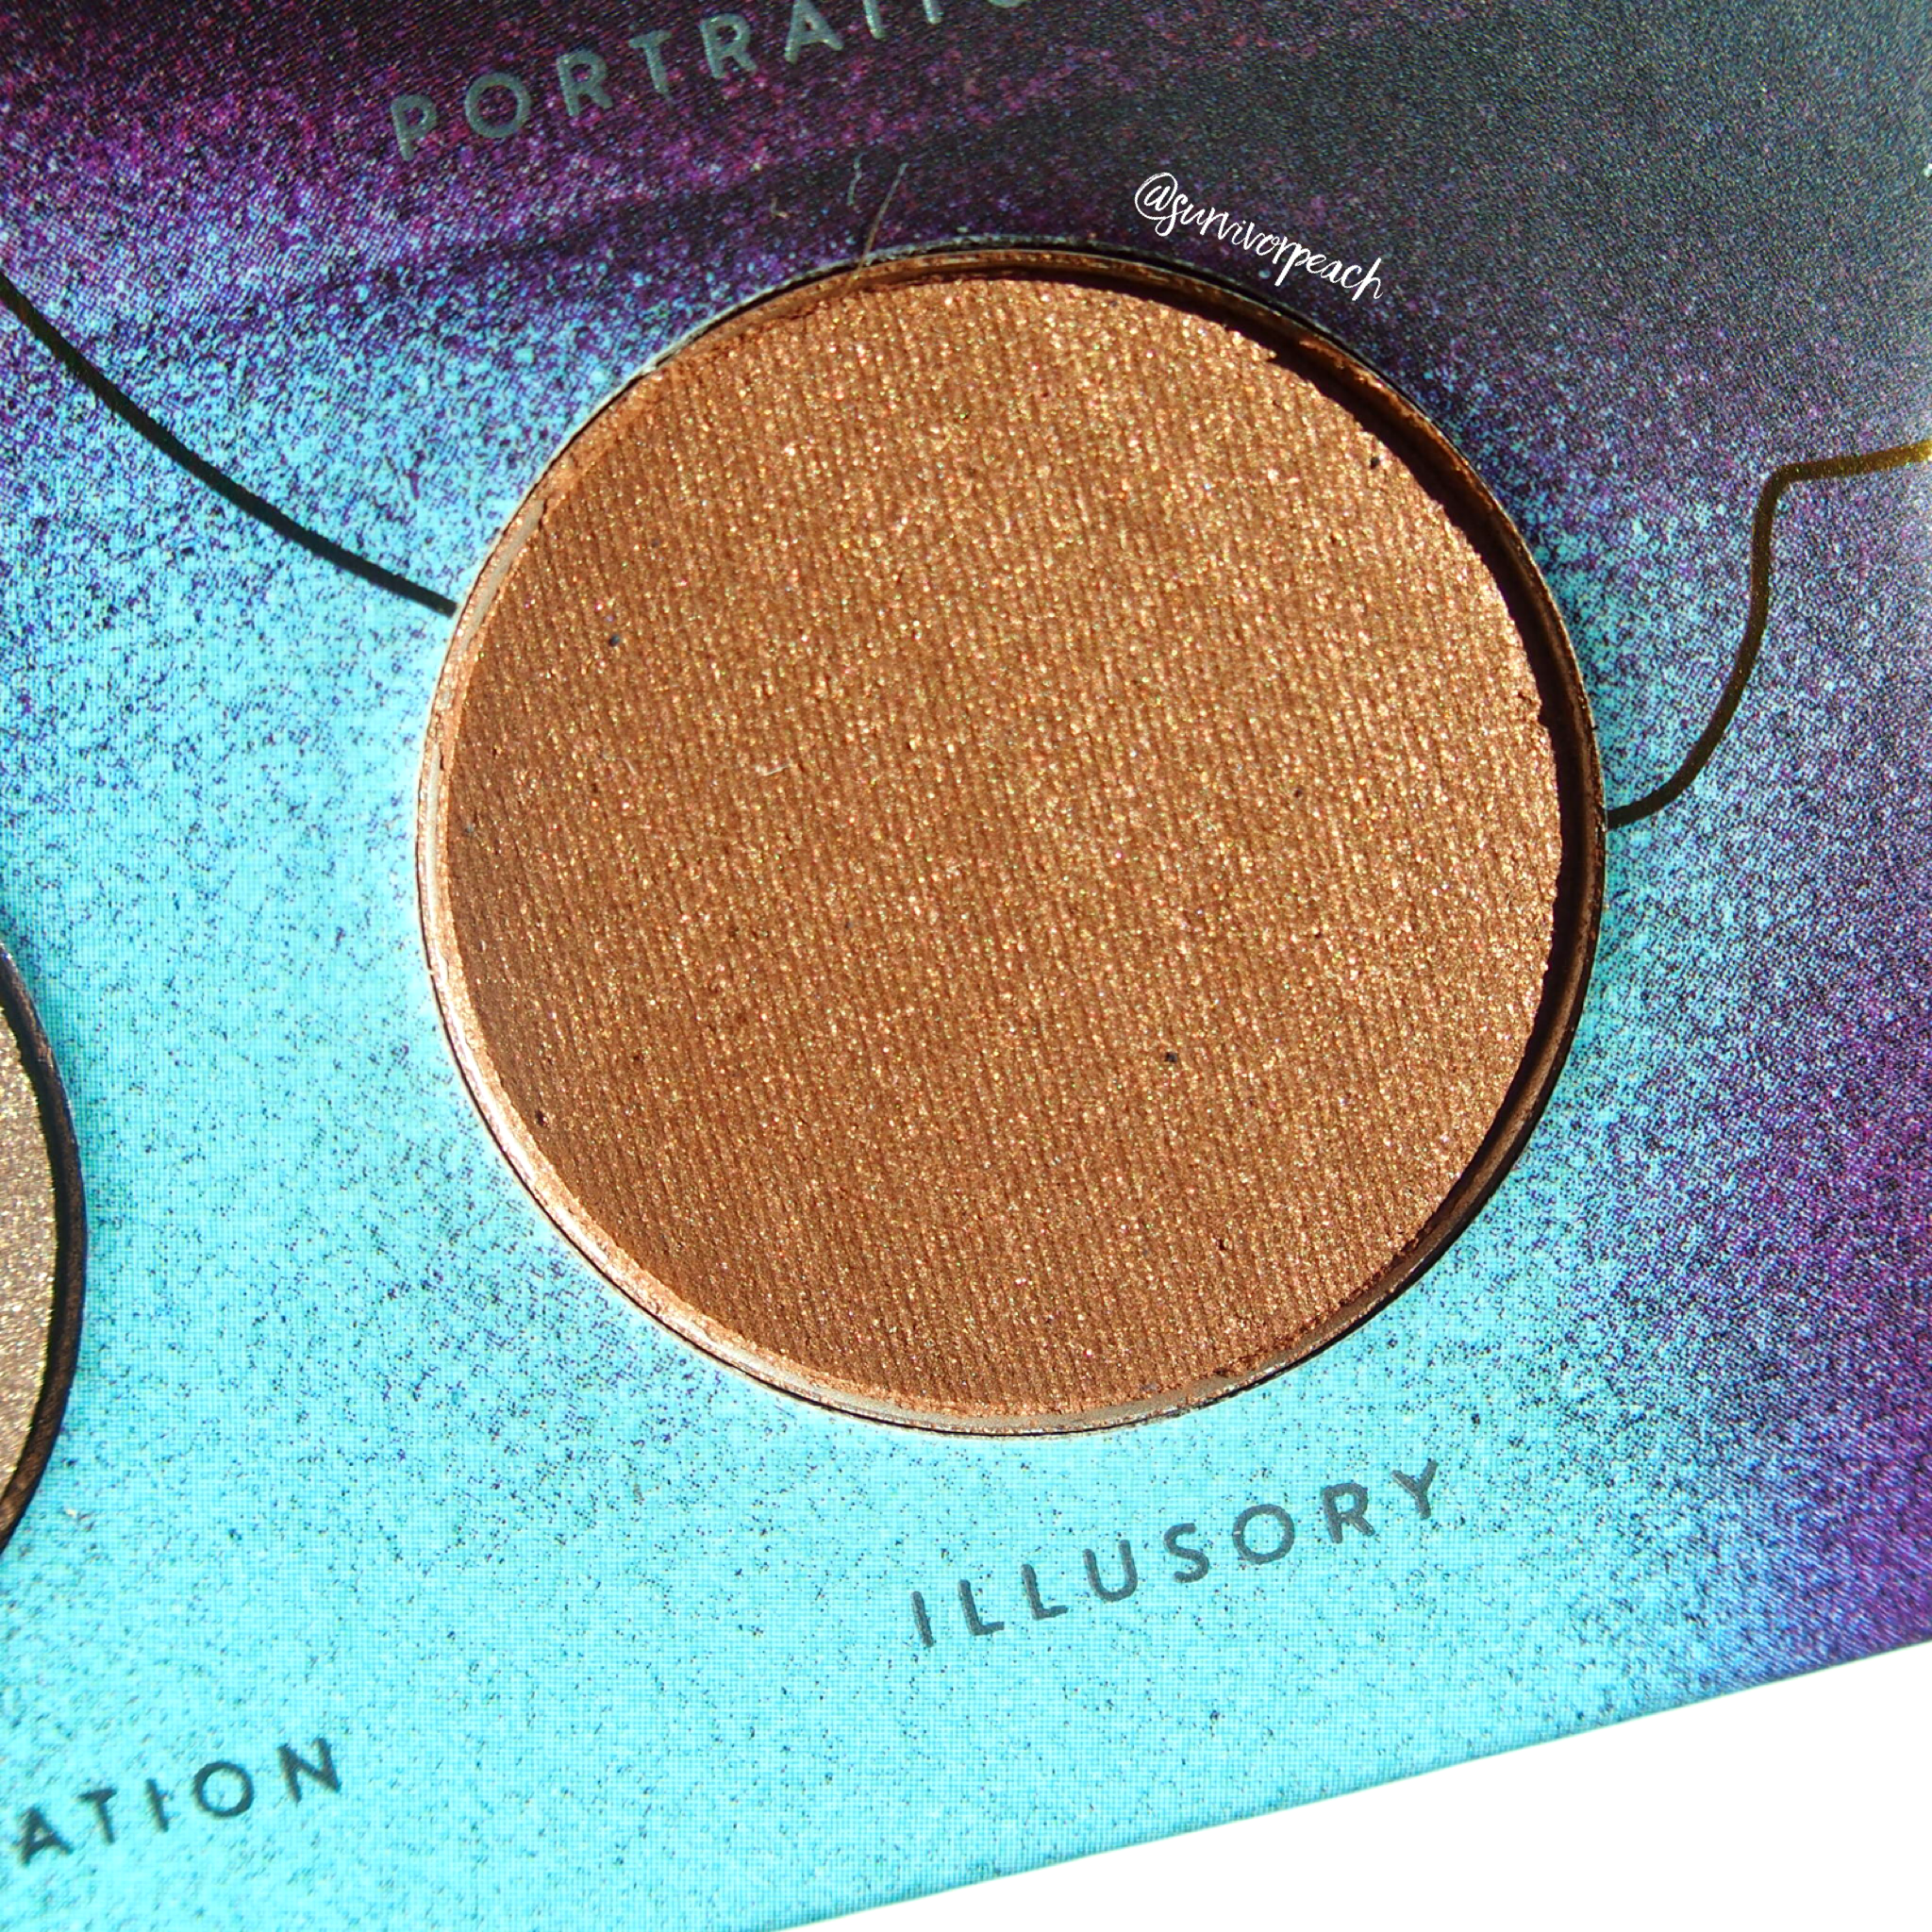 Zoeva Eclectric Eyes Eyeshadow palette - Illusory